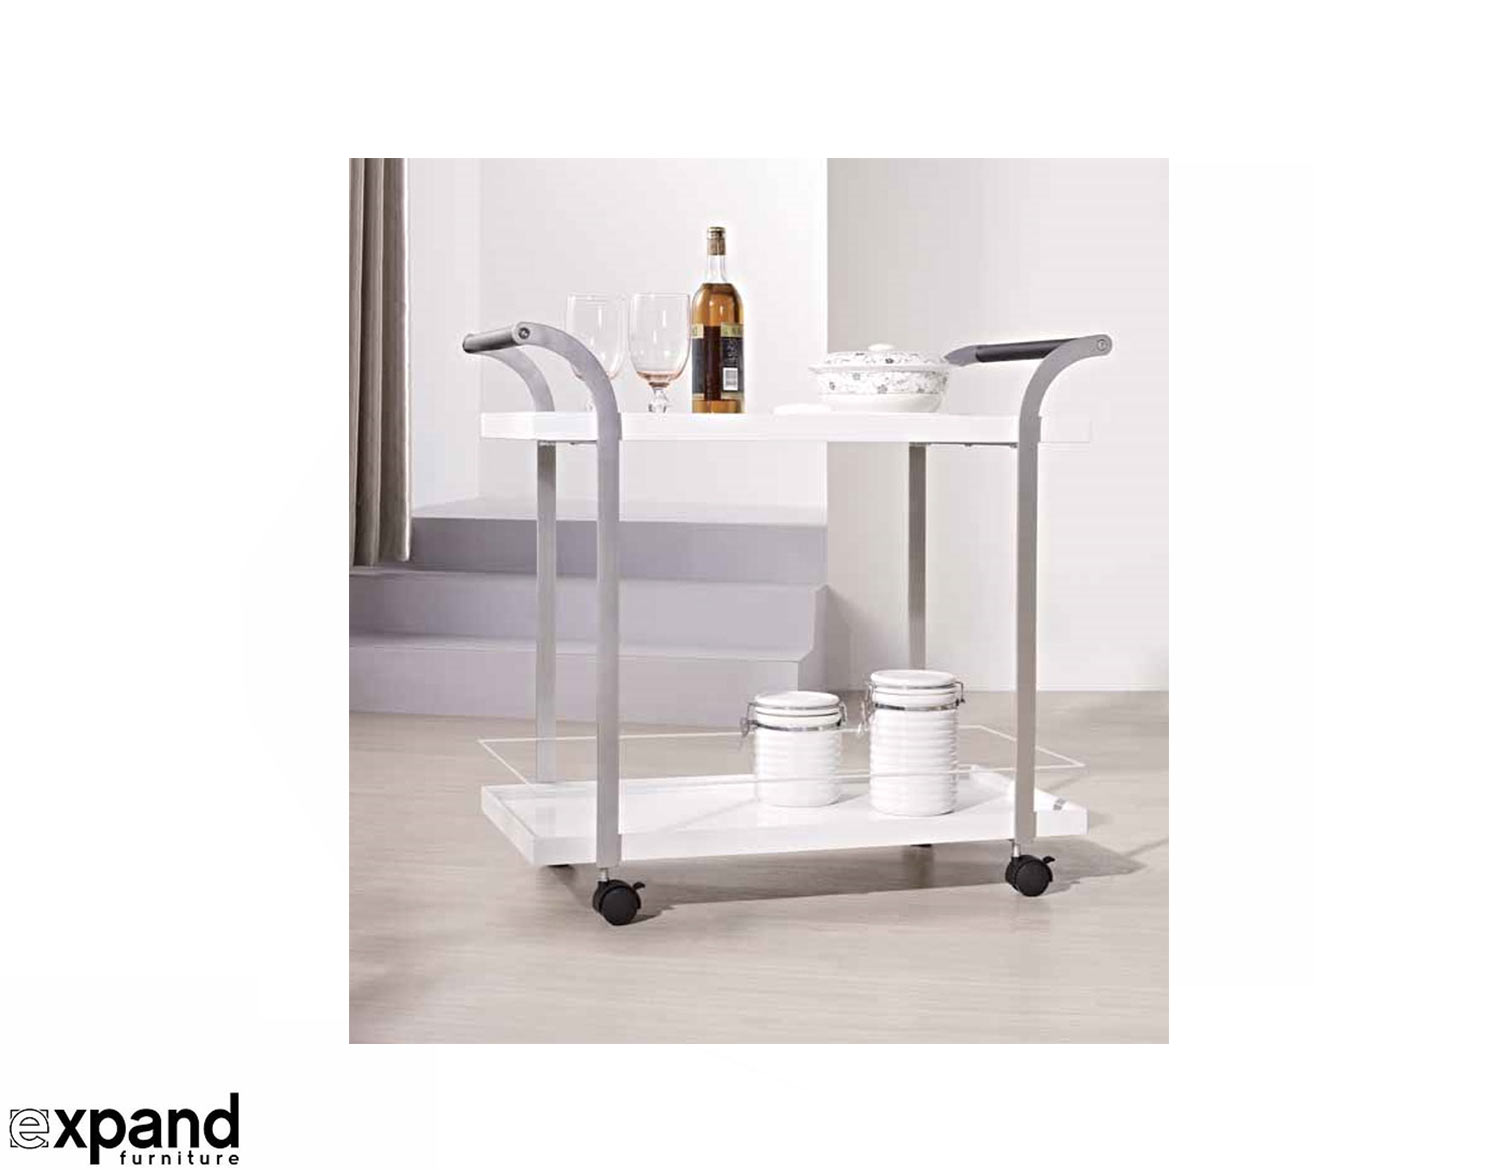 Motion Trolley Mobile Serving Cart